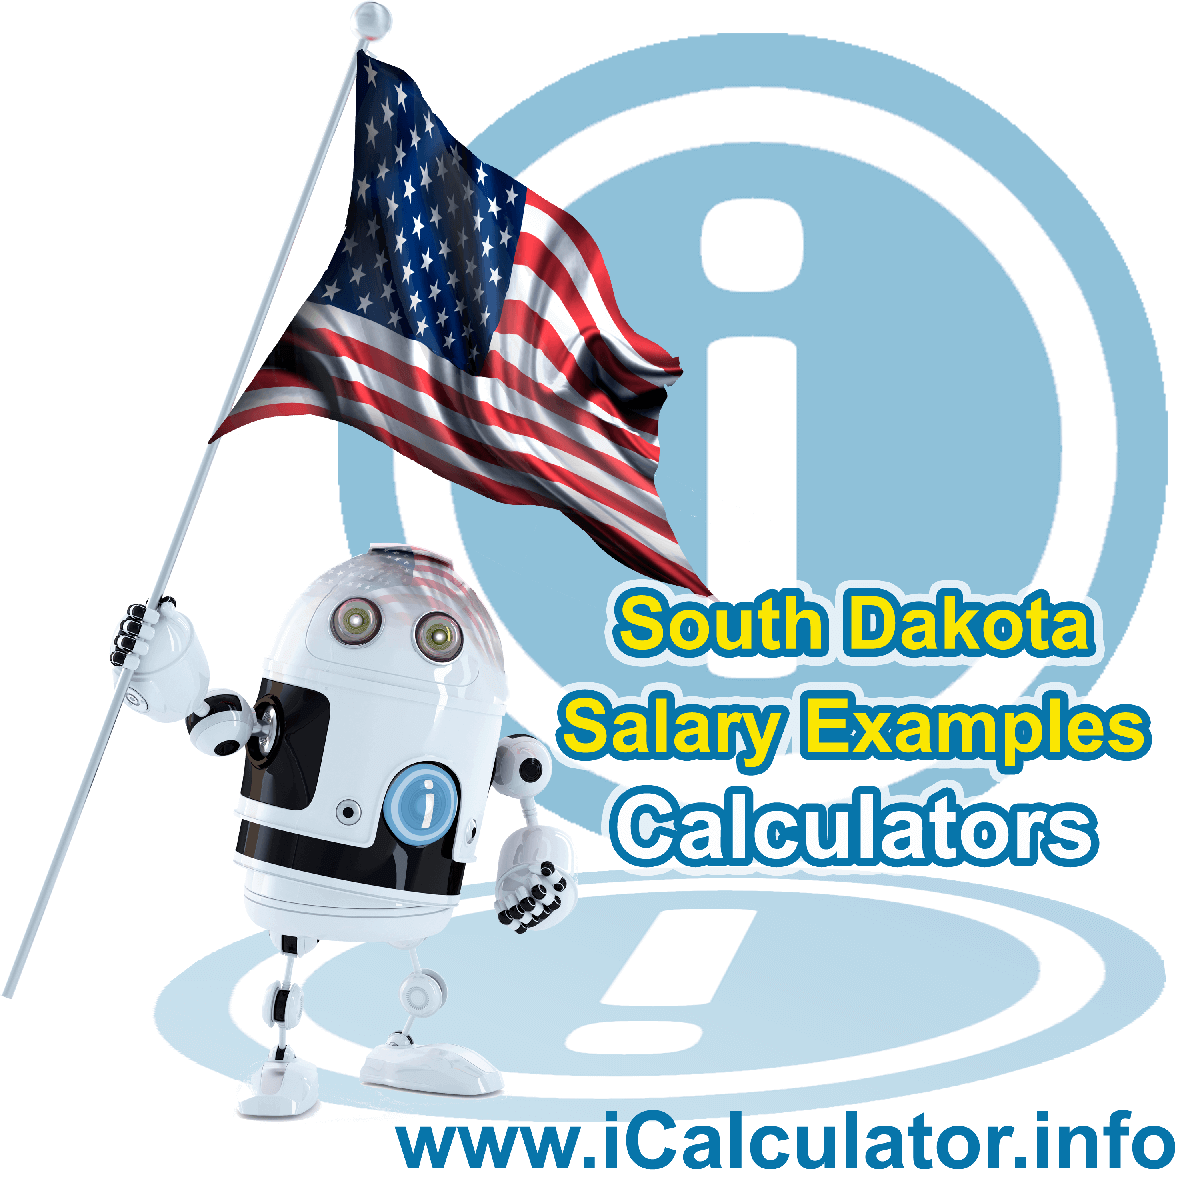 South Dakota Salary Example for $70.00 in 2020 | iCalculator | $70.00 salary example for employee and employer paying South Dakota State tincome taxes. Detailed salary after tax calculation including South Dakota State Tax, Federal State Tax, Medicare Deductions, Social Security, Capital Gains and other income tax and salary deductions complete with supporting South Dakota state tax tables